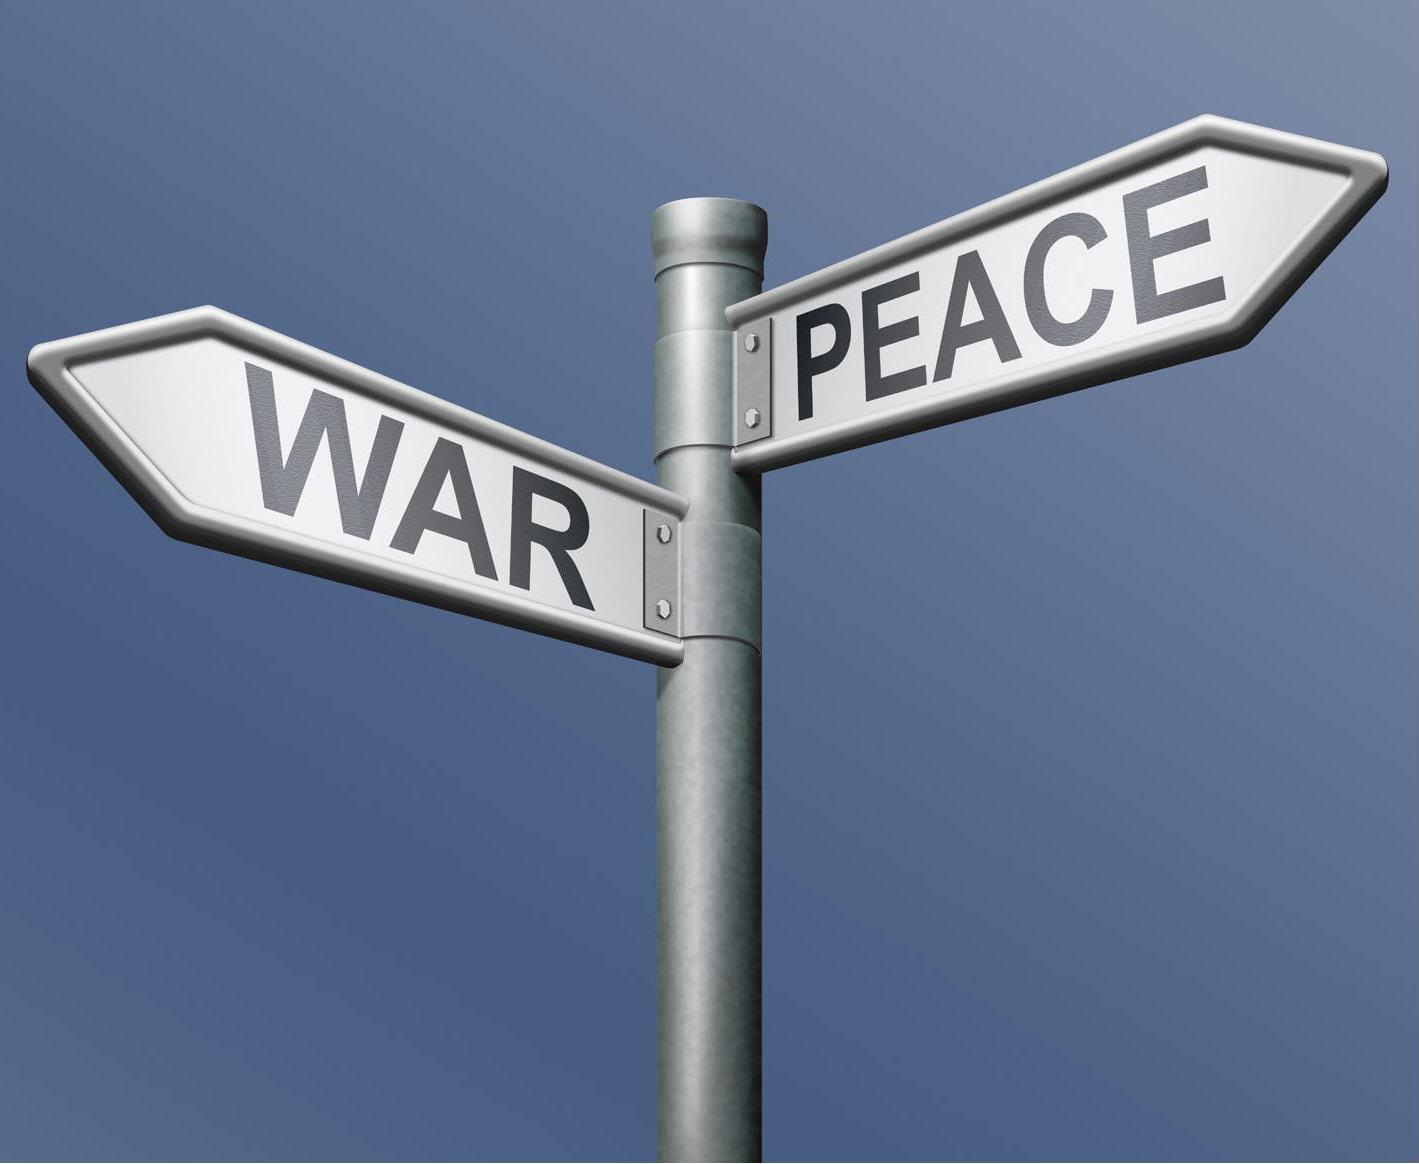 essays on peace essay on war and peacewar and peace